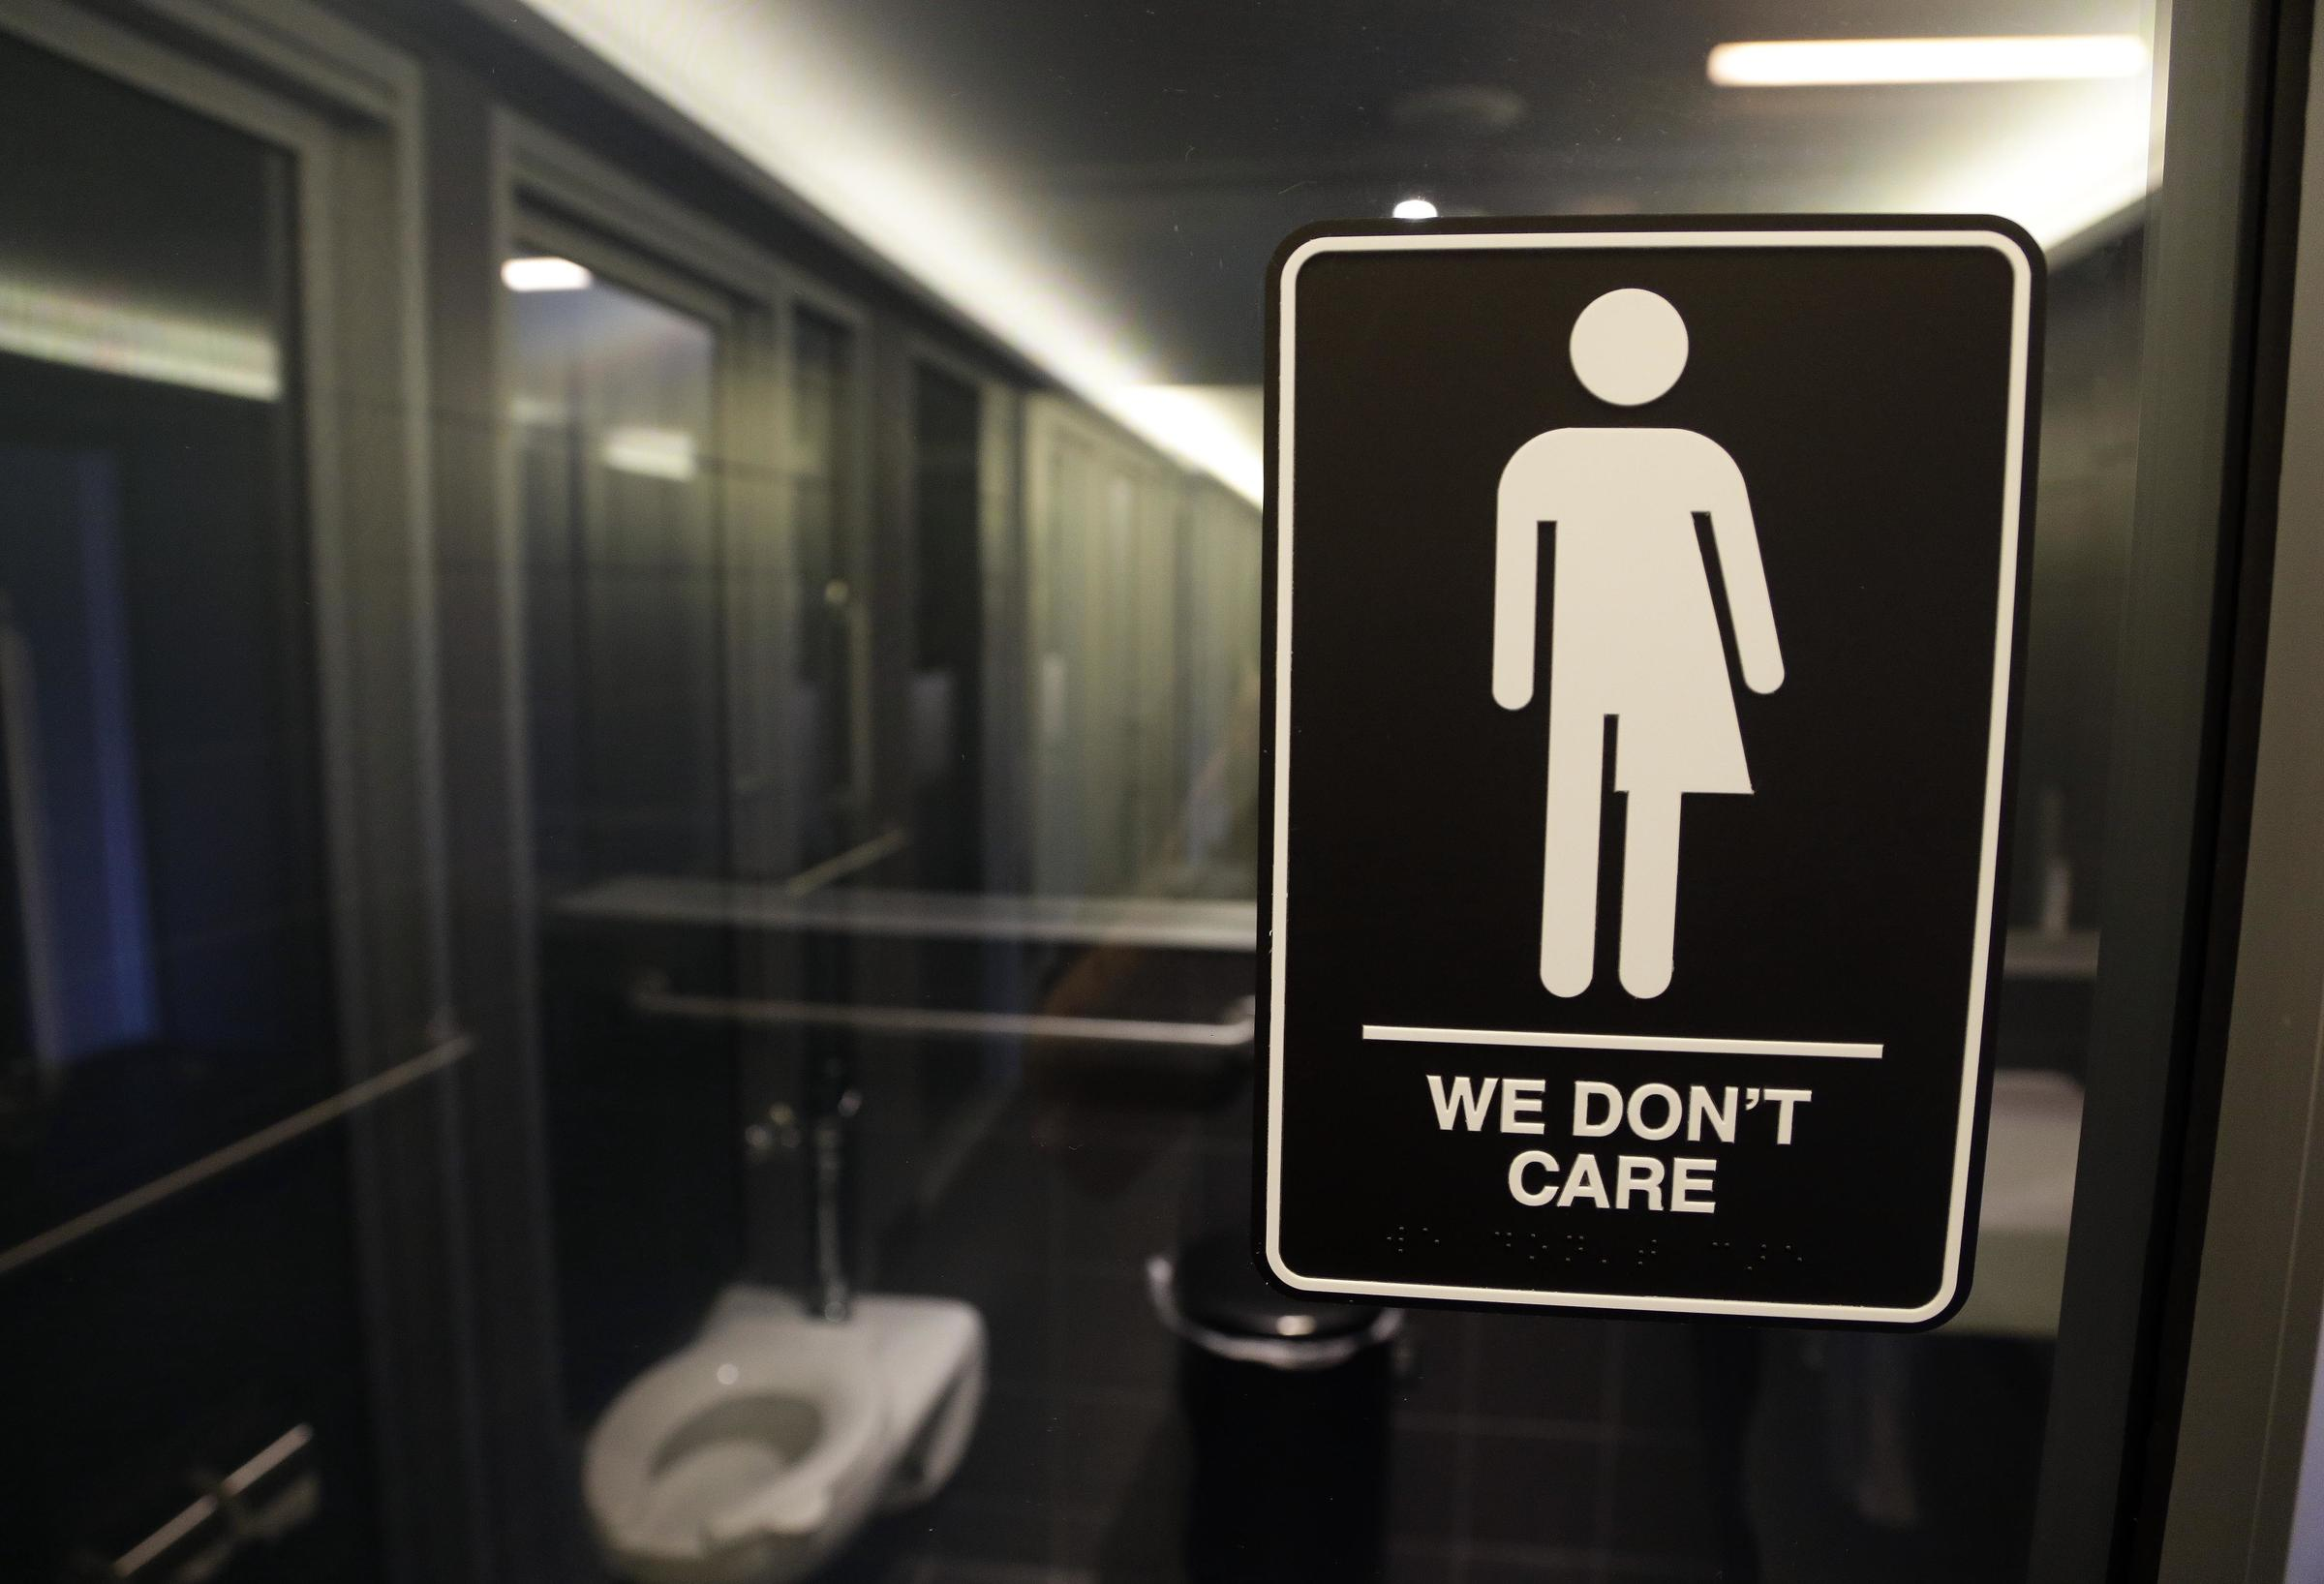 ACLU, North Carolina governor reach agreement in transgender bathroom lawsuit